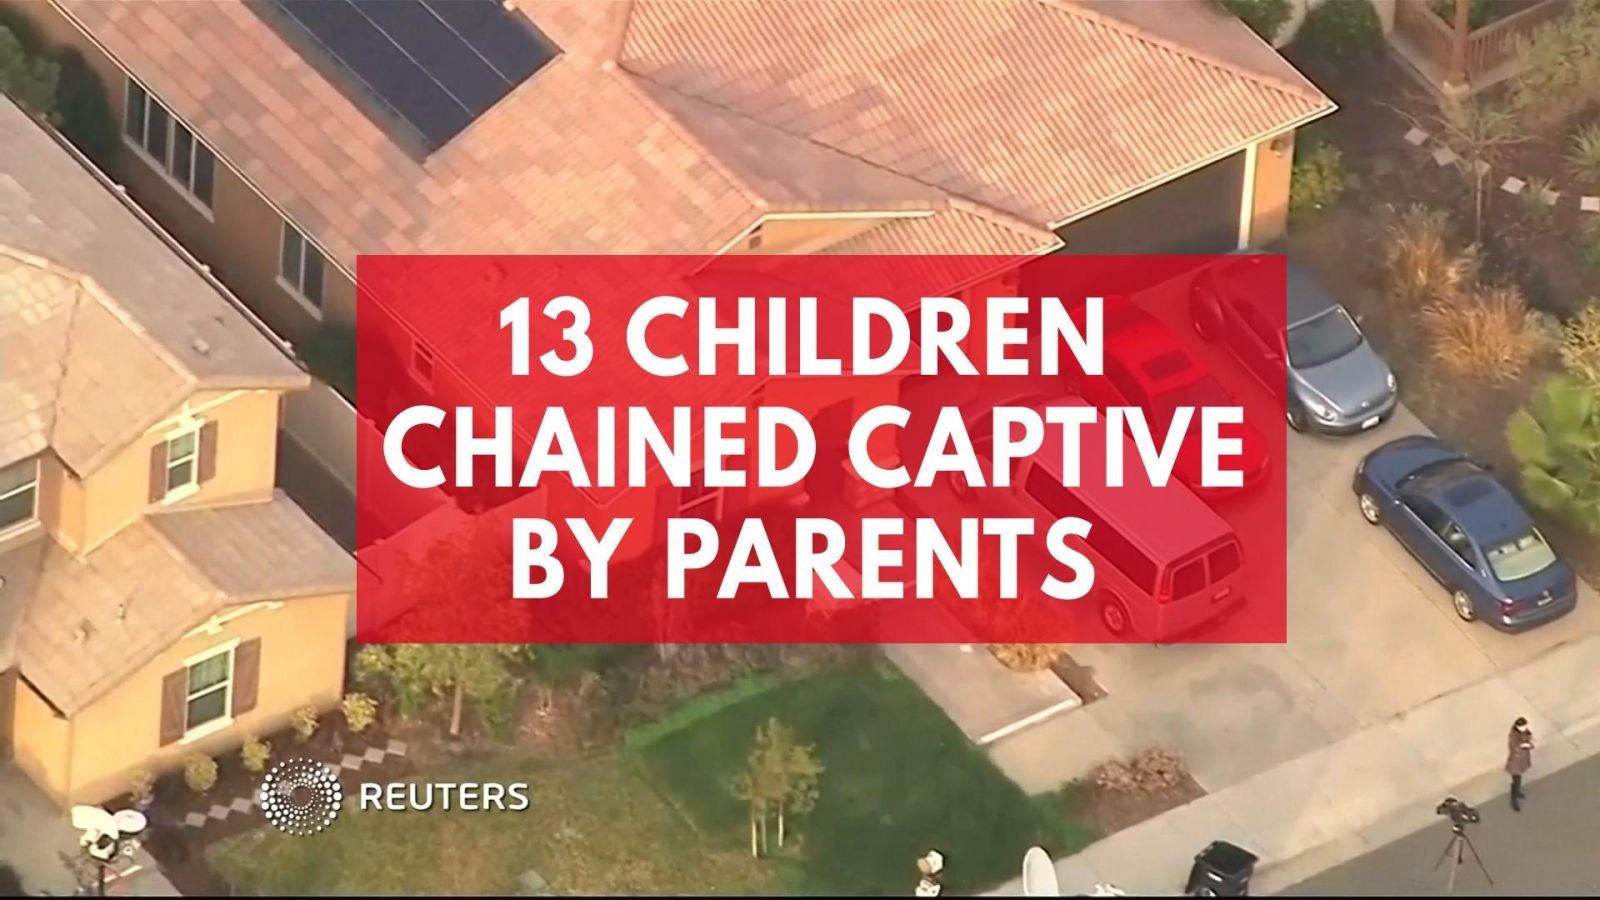 13-children-chained-captive-by-parents-in-california